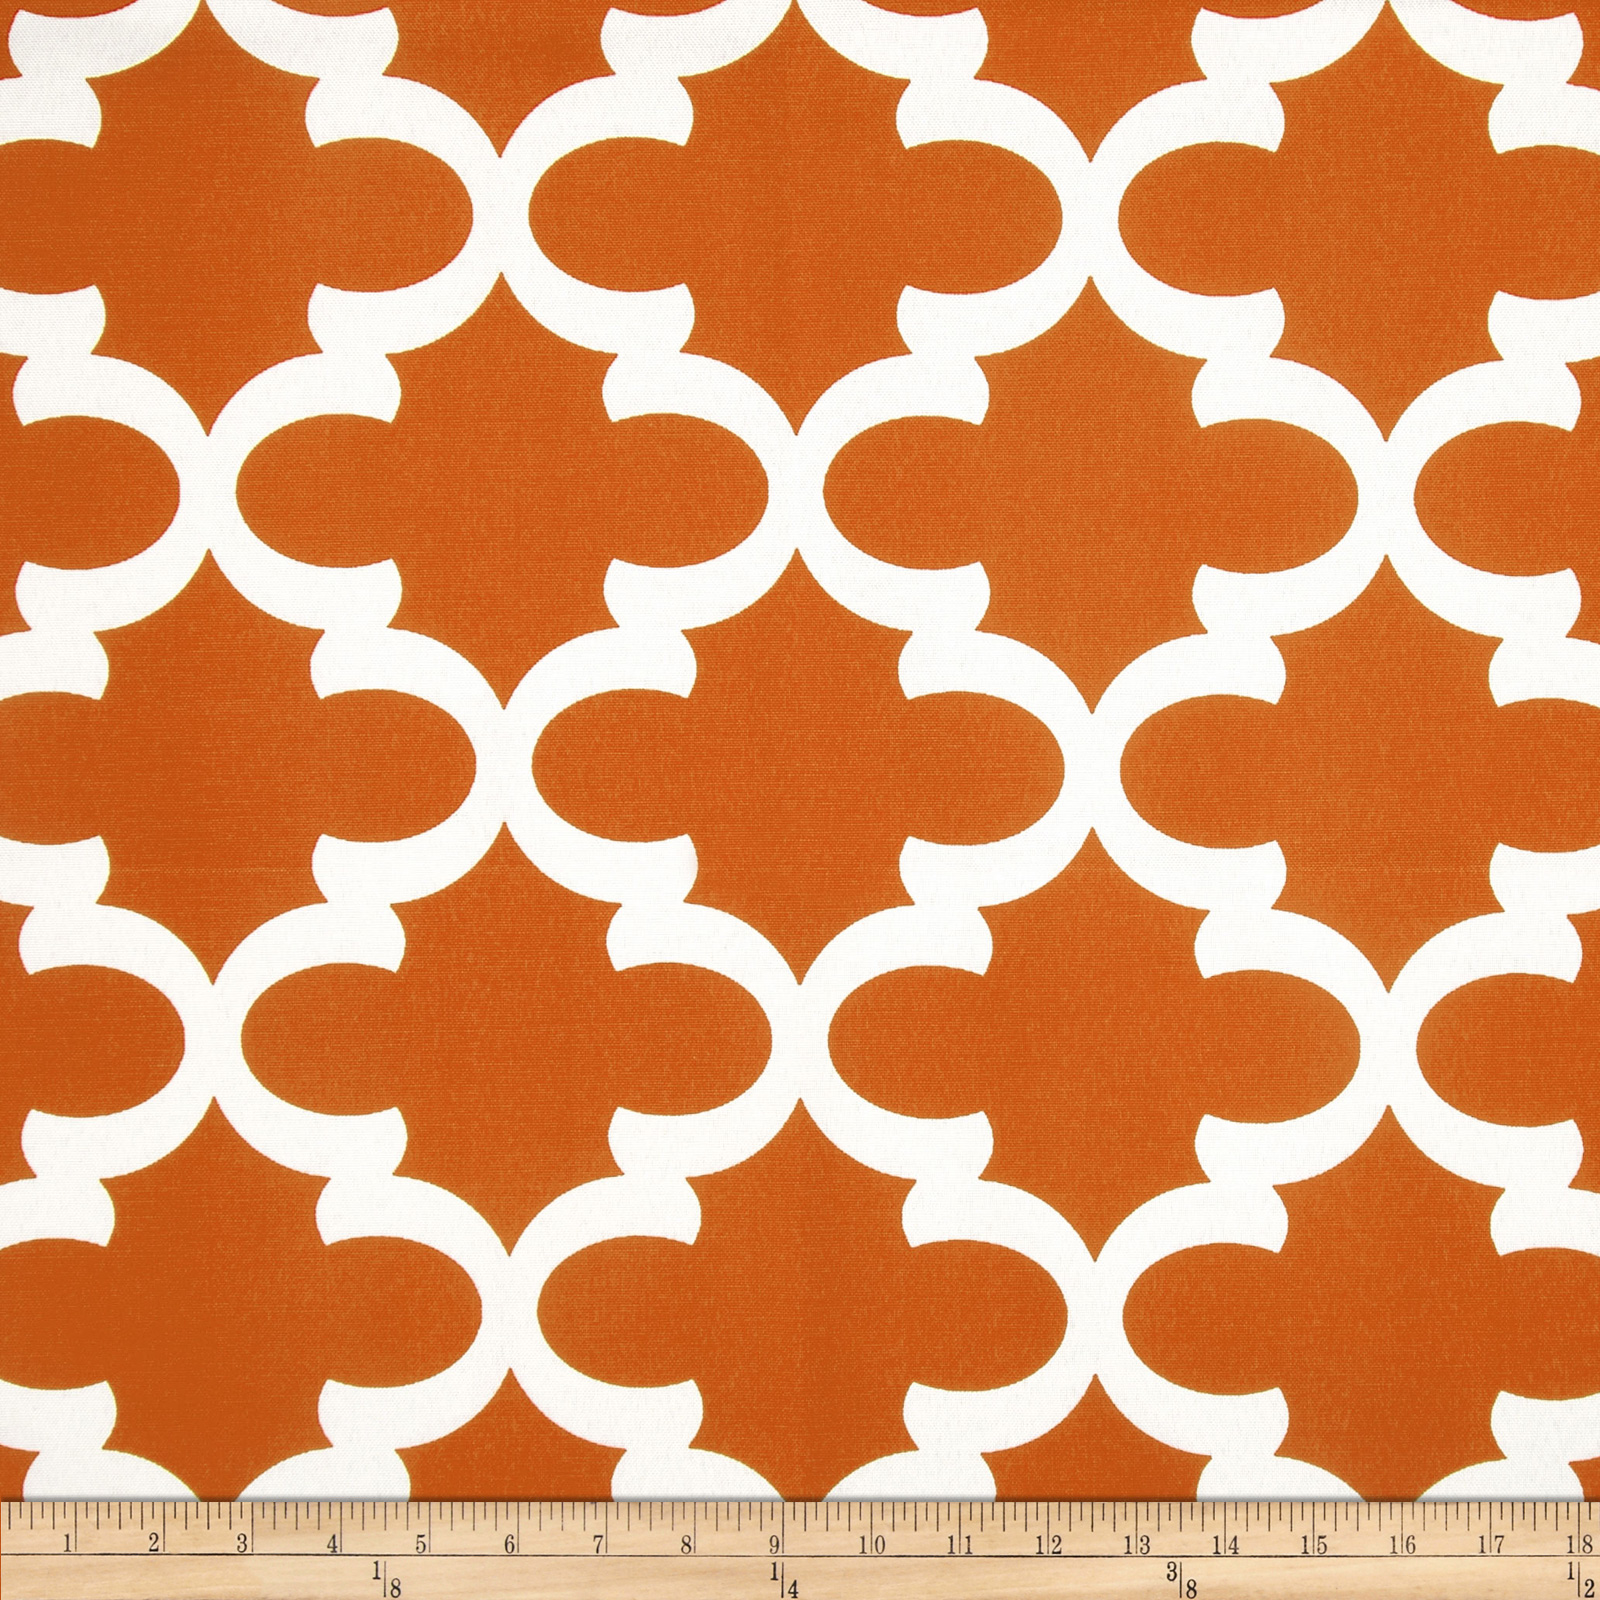 Premier Prints Fynn Macon Apache Orange Fabric